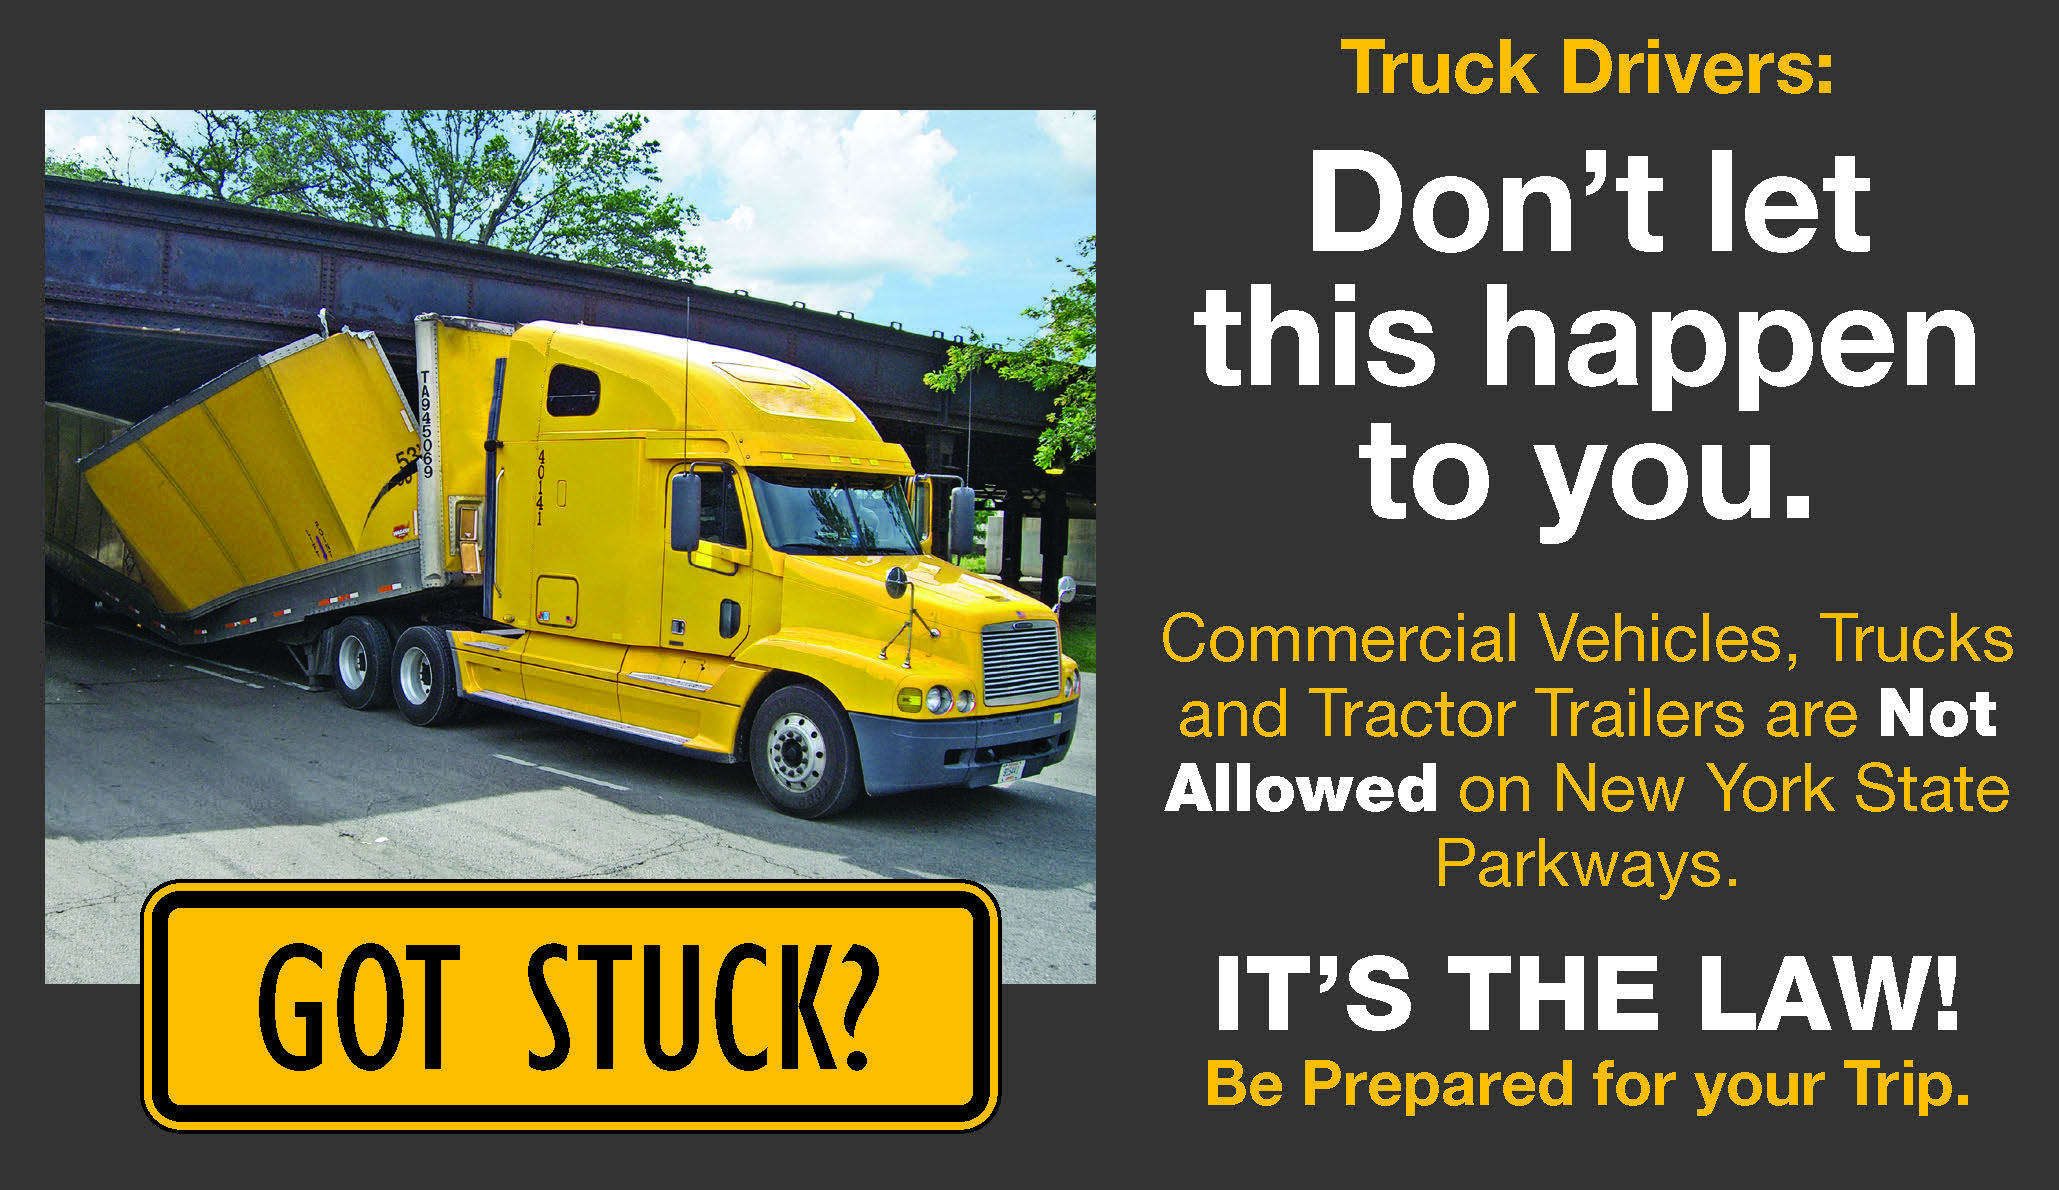 Nyc dot trucks and commercial vehicles for New york state department of motor vehicles handicap parking permit